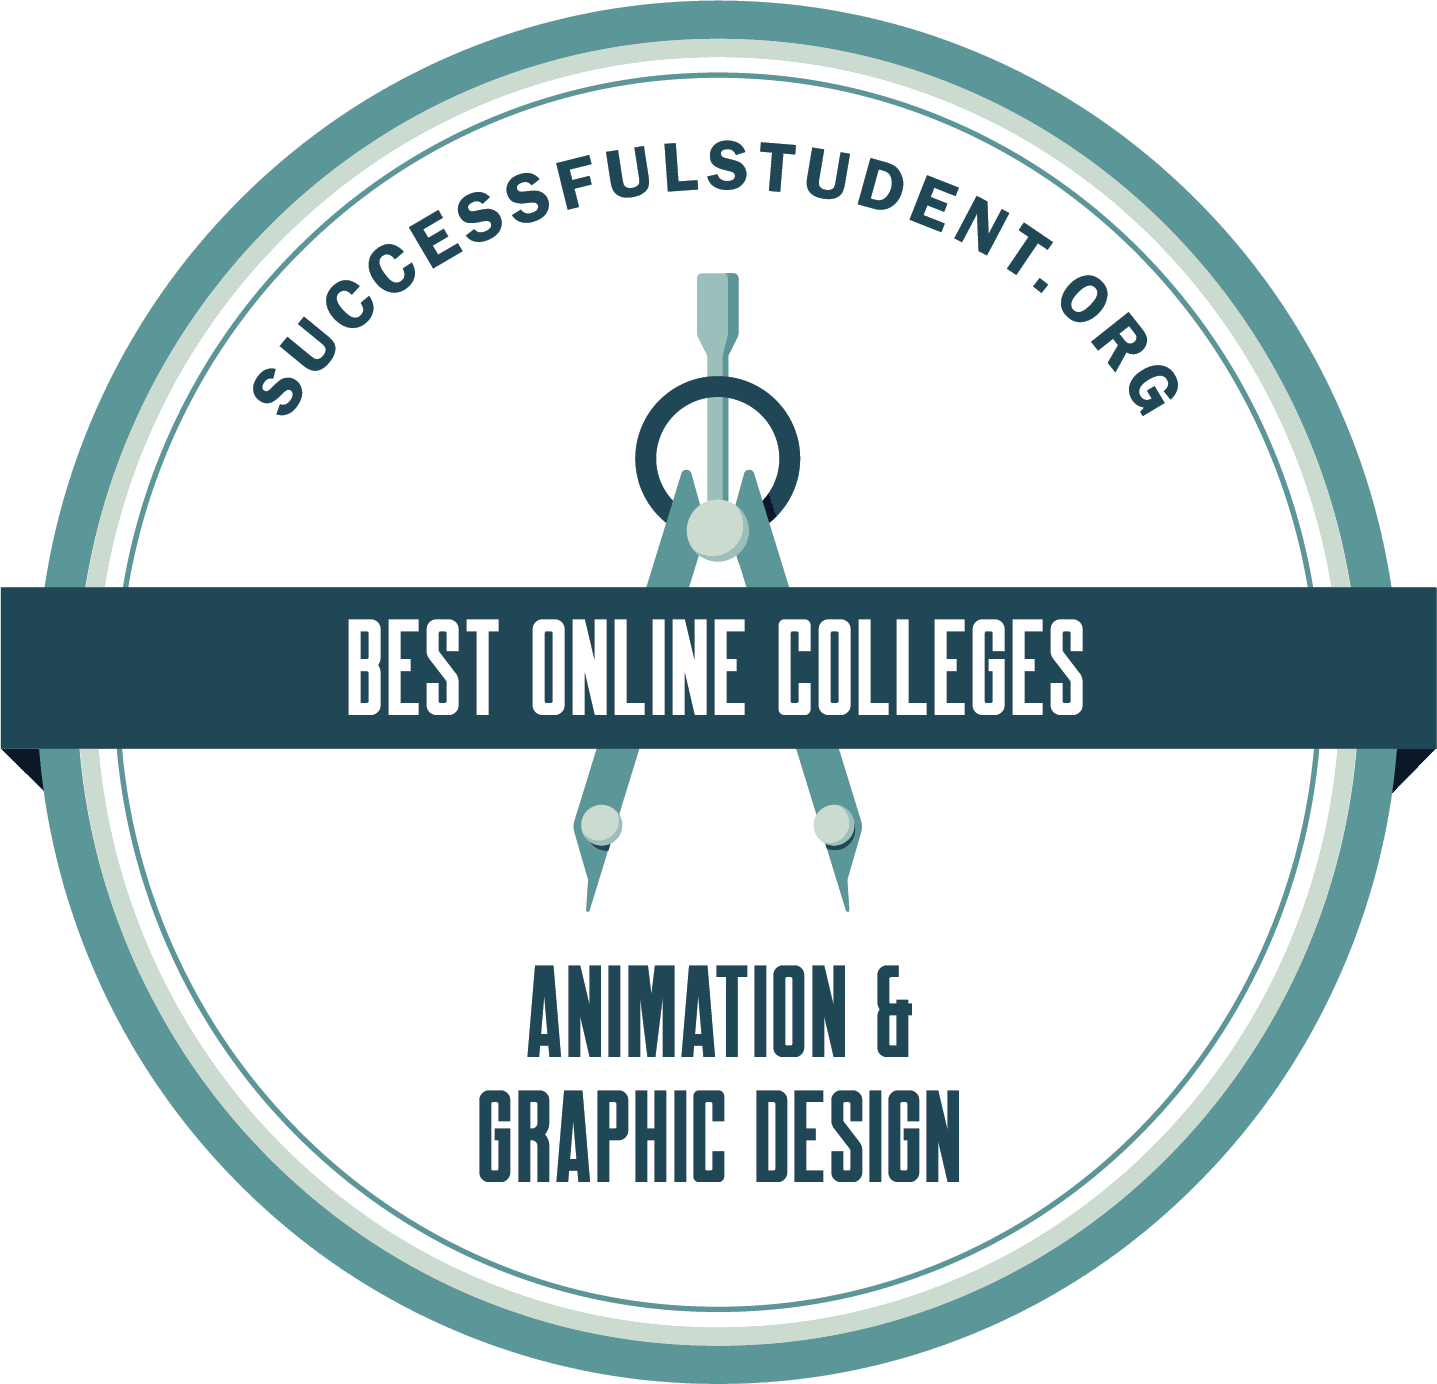 The Best Online Animation and Graphic Design Colleges 2021's Badge